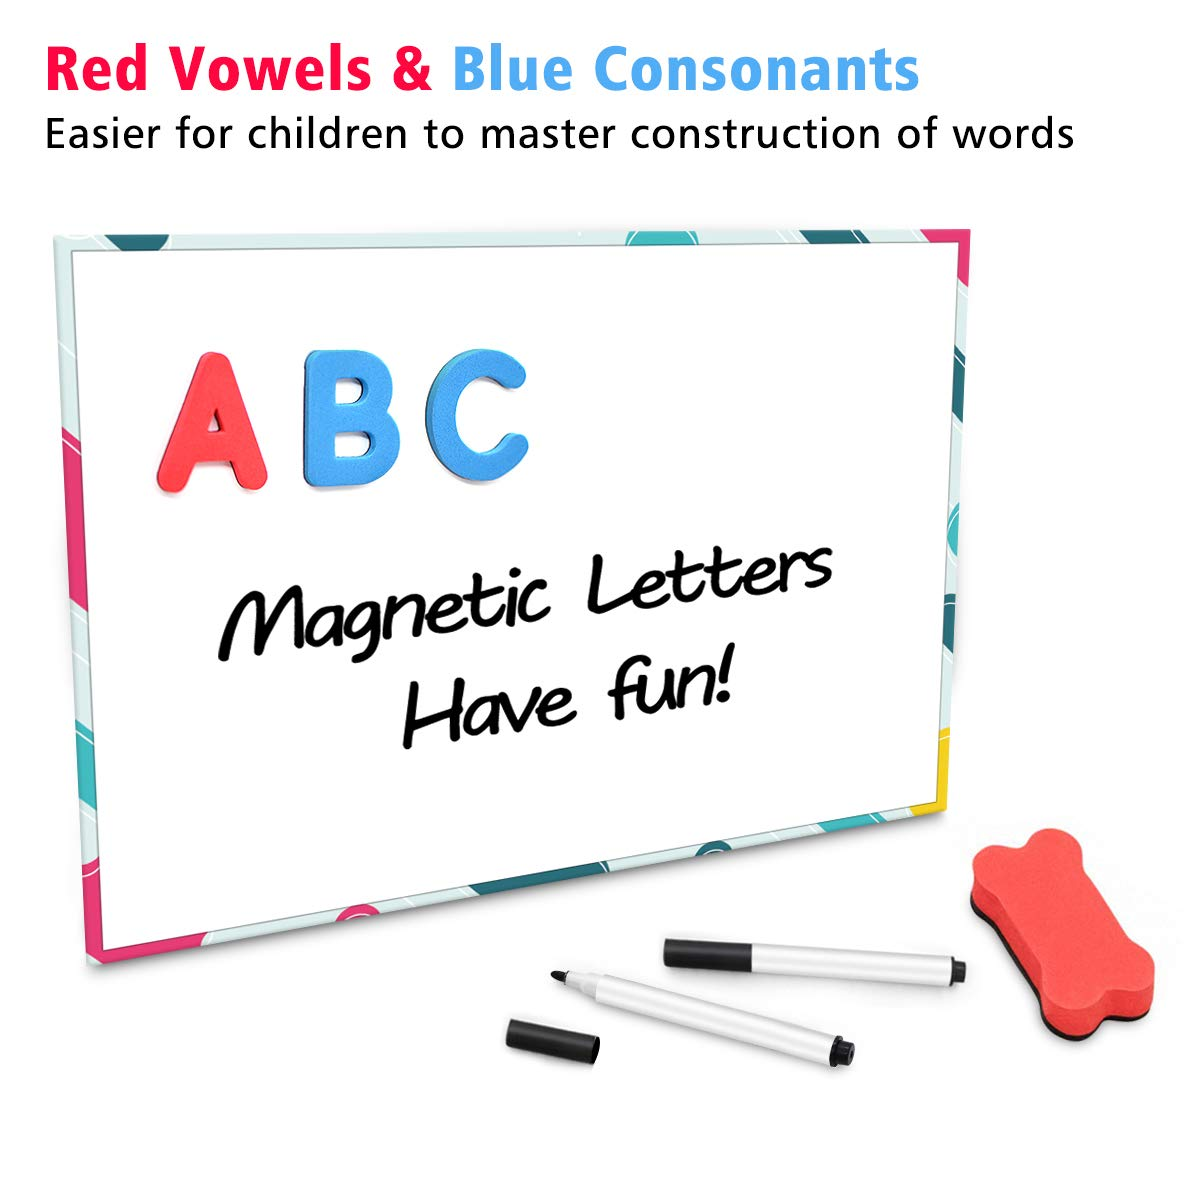 JONYJ Foam Magnetic Letters, Magnetic Alphabet Letters Board with Storage Box, 208 Pcs ABC Uppercase Lowercase Alphabet Magnets for Kids Spelling and Learning - Classroom & Home Education by JONYJ (Image #4)